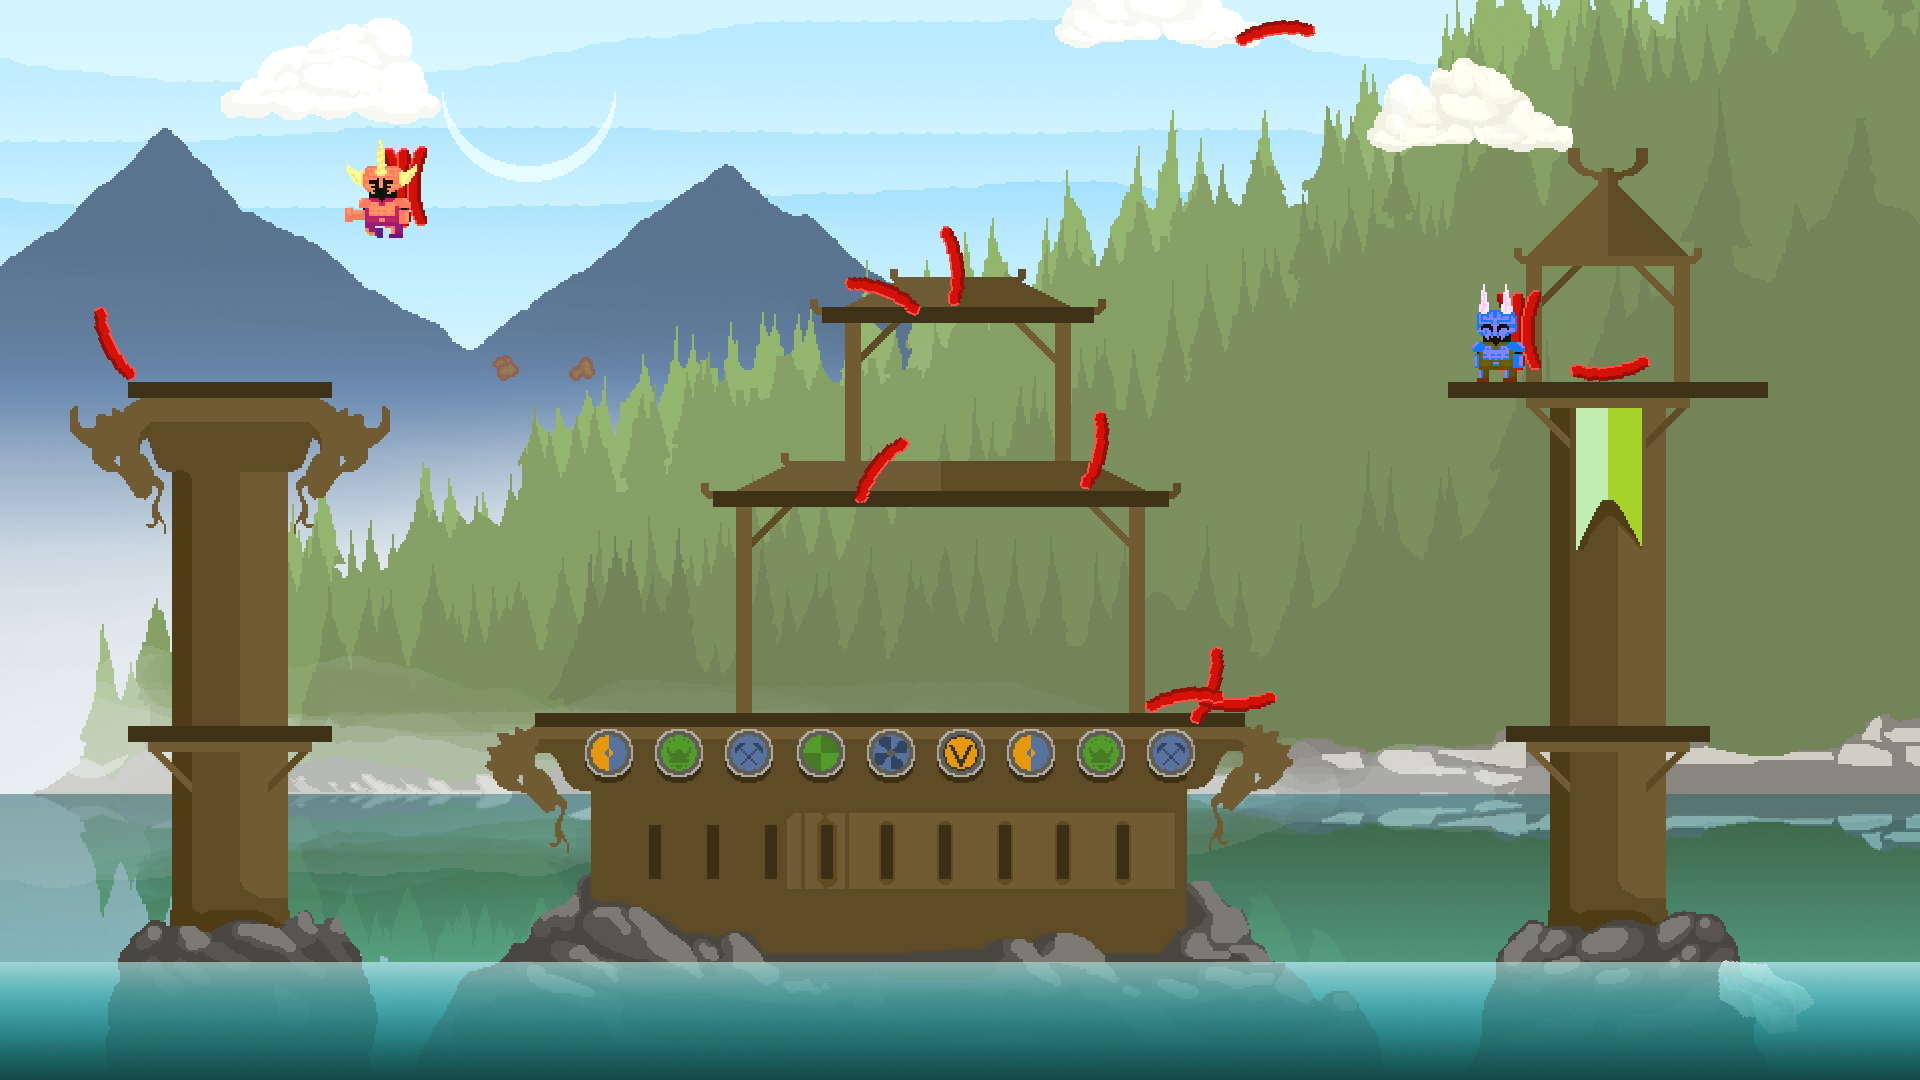 Pølsefest – Local multiplayer brawler with vikings and sausages